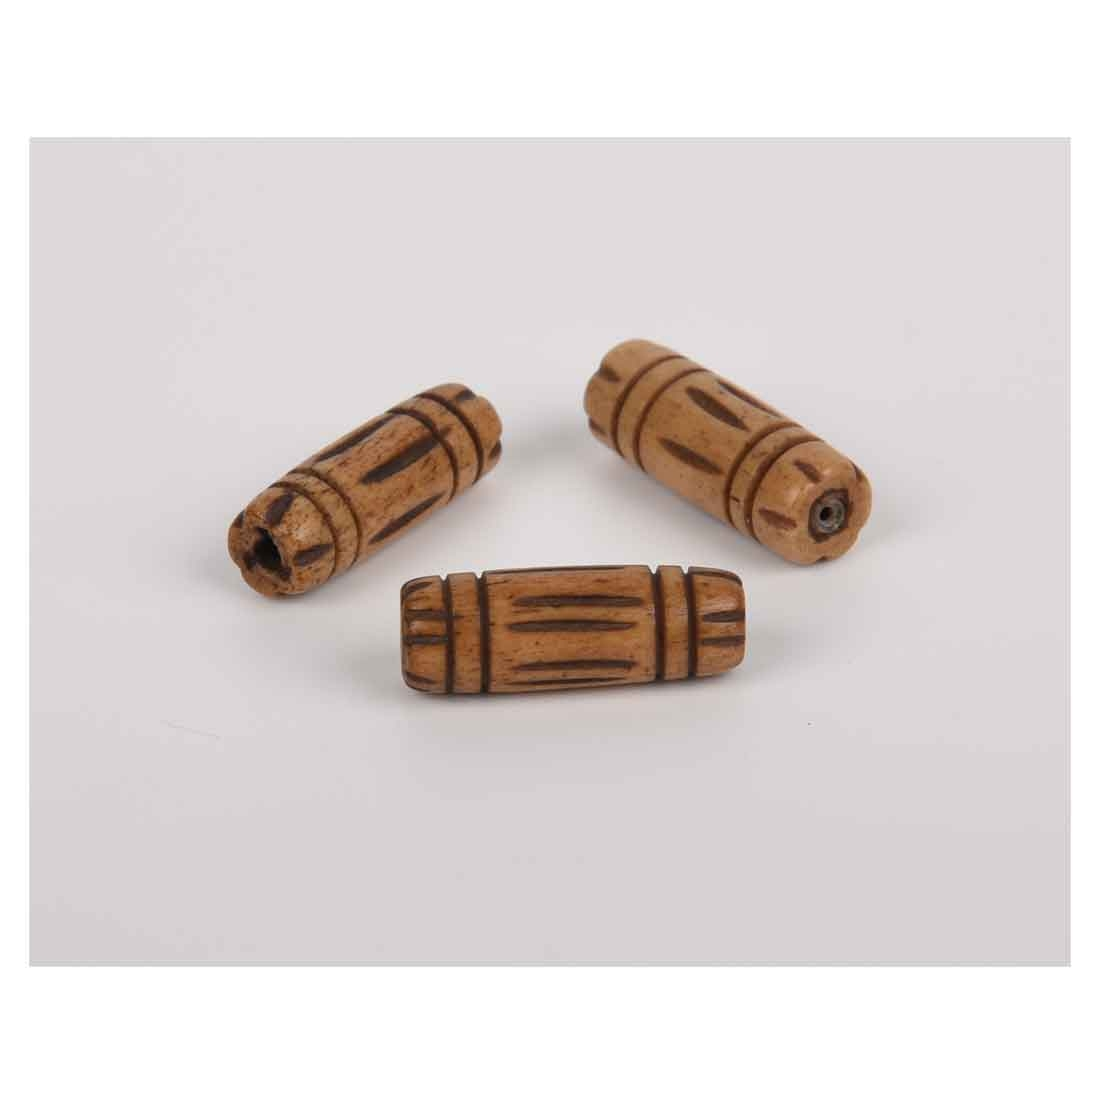 Beads India 1700009 Handcrafted Bone Beads/Discounts Above 500 pcs